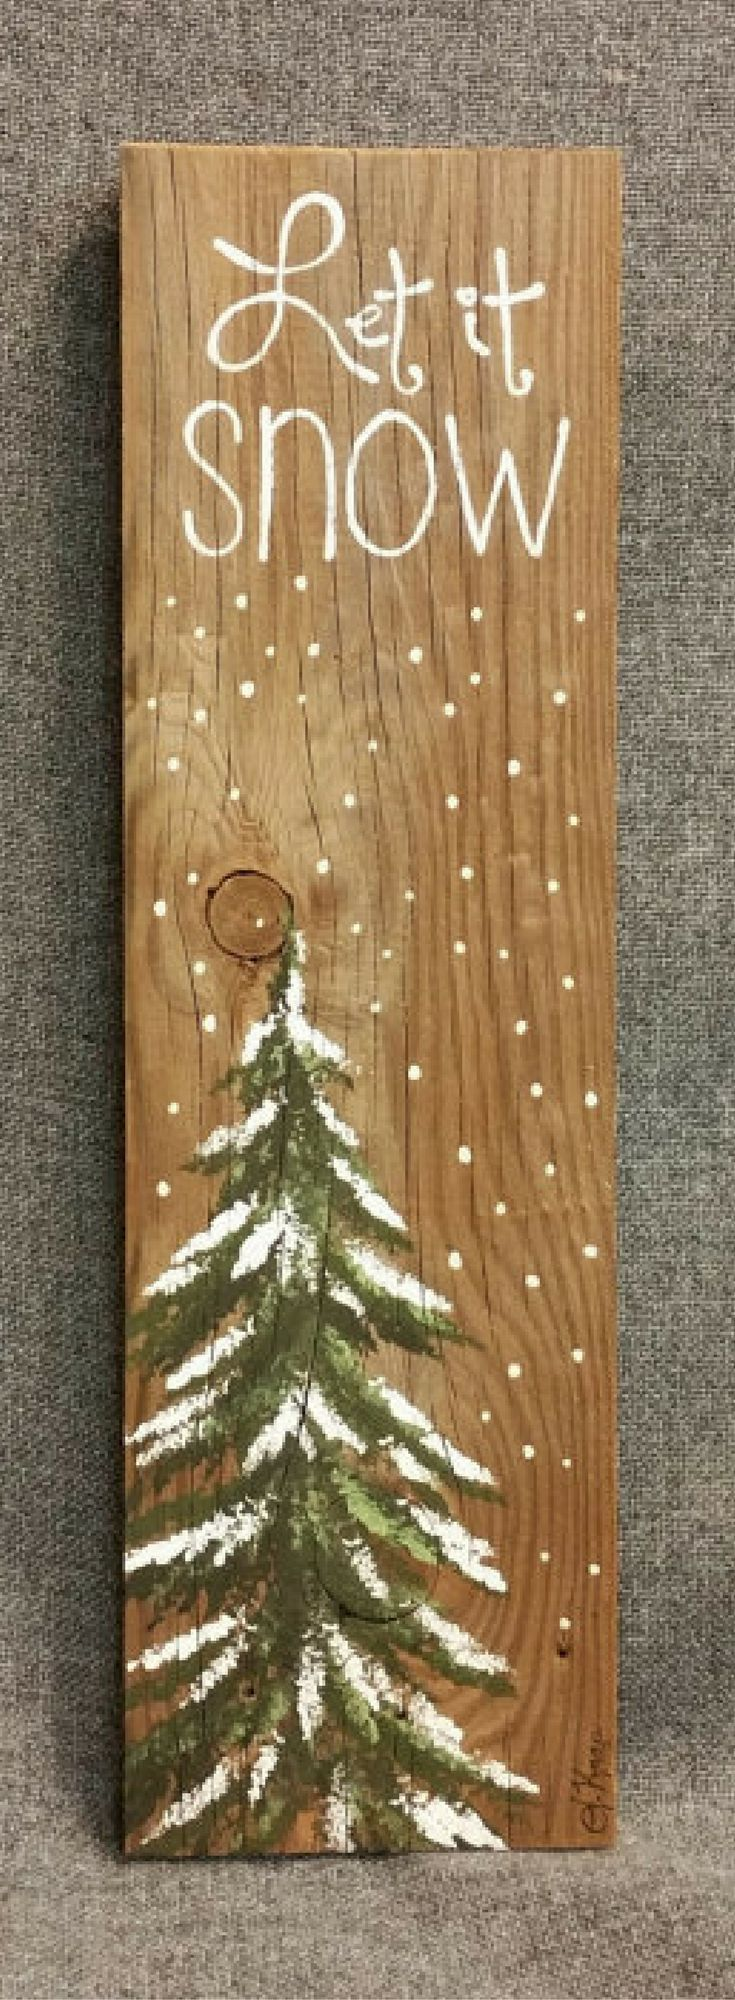 Let it Snow, Hand painted Christmas decorations, winter greenery, Winter Reclaimed Wood Pallet Art, Pine tree, Christmas, Rustic Christmas decor, Rustic Christmas sign, Rustic decor #affiliate (Christmas Tree)